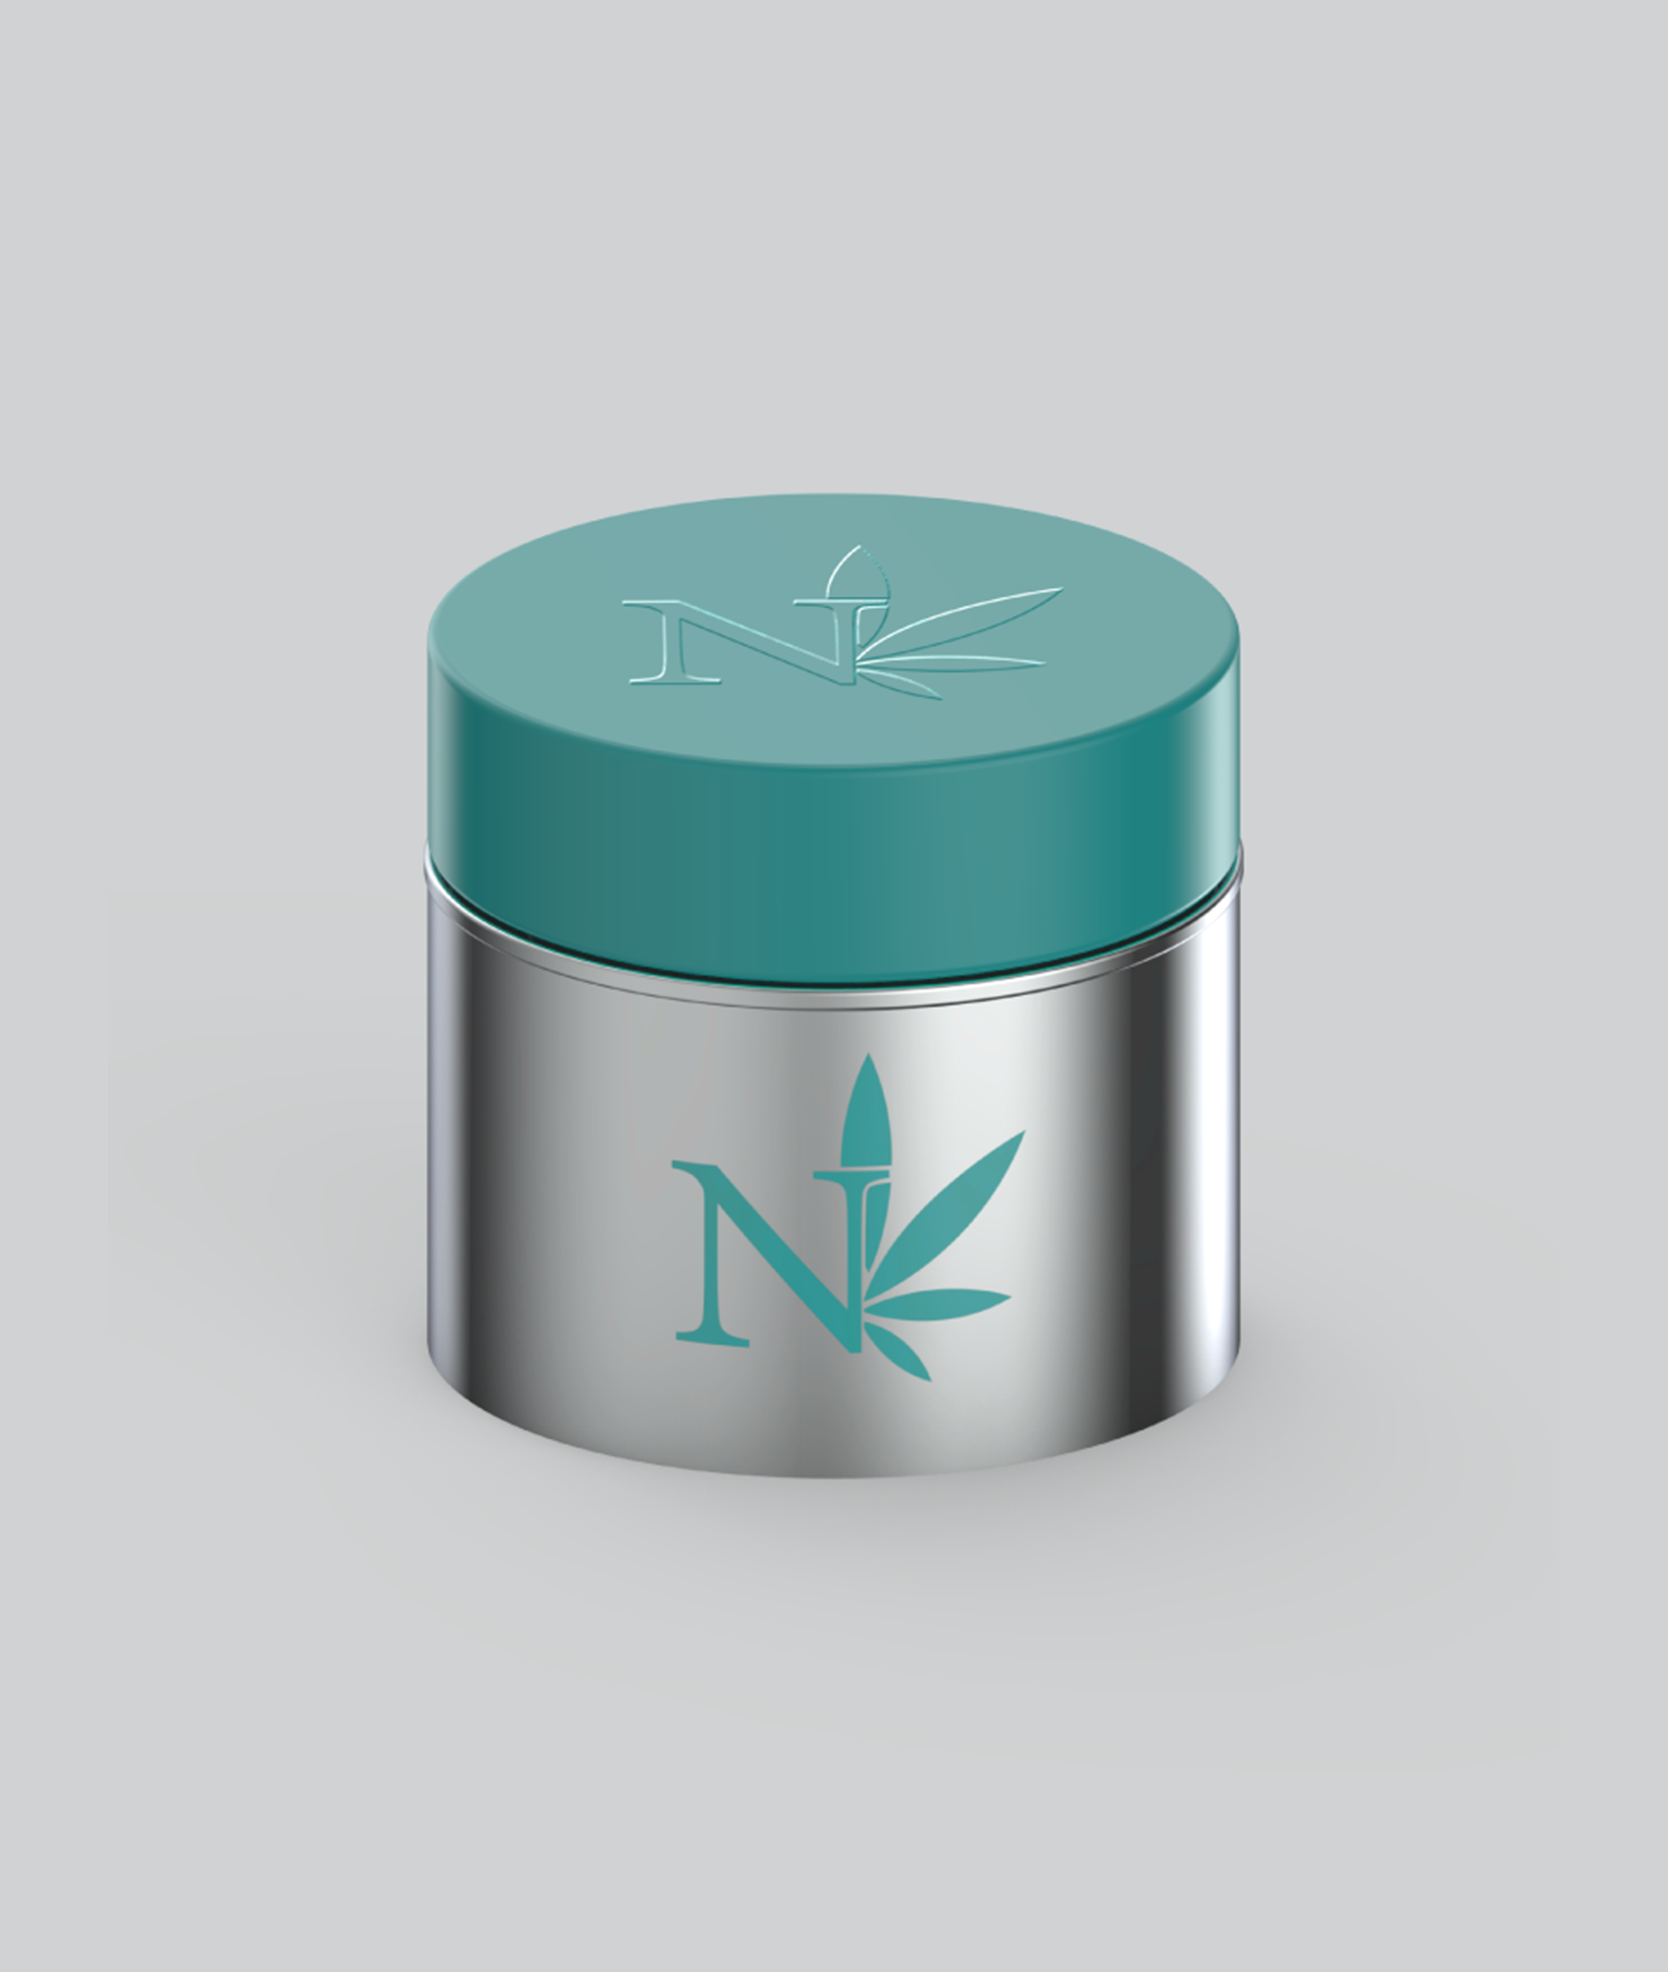 nleaf-custom-round-small-tin-containers